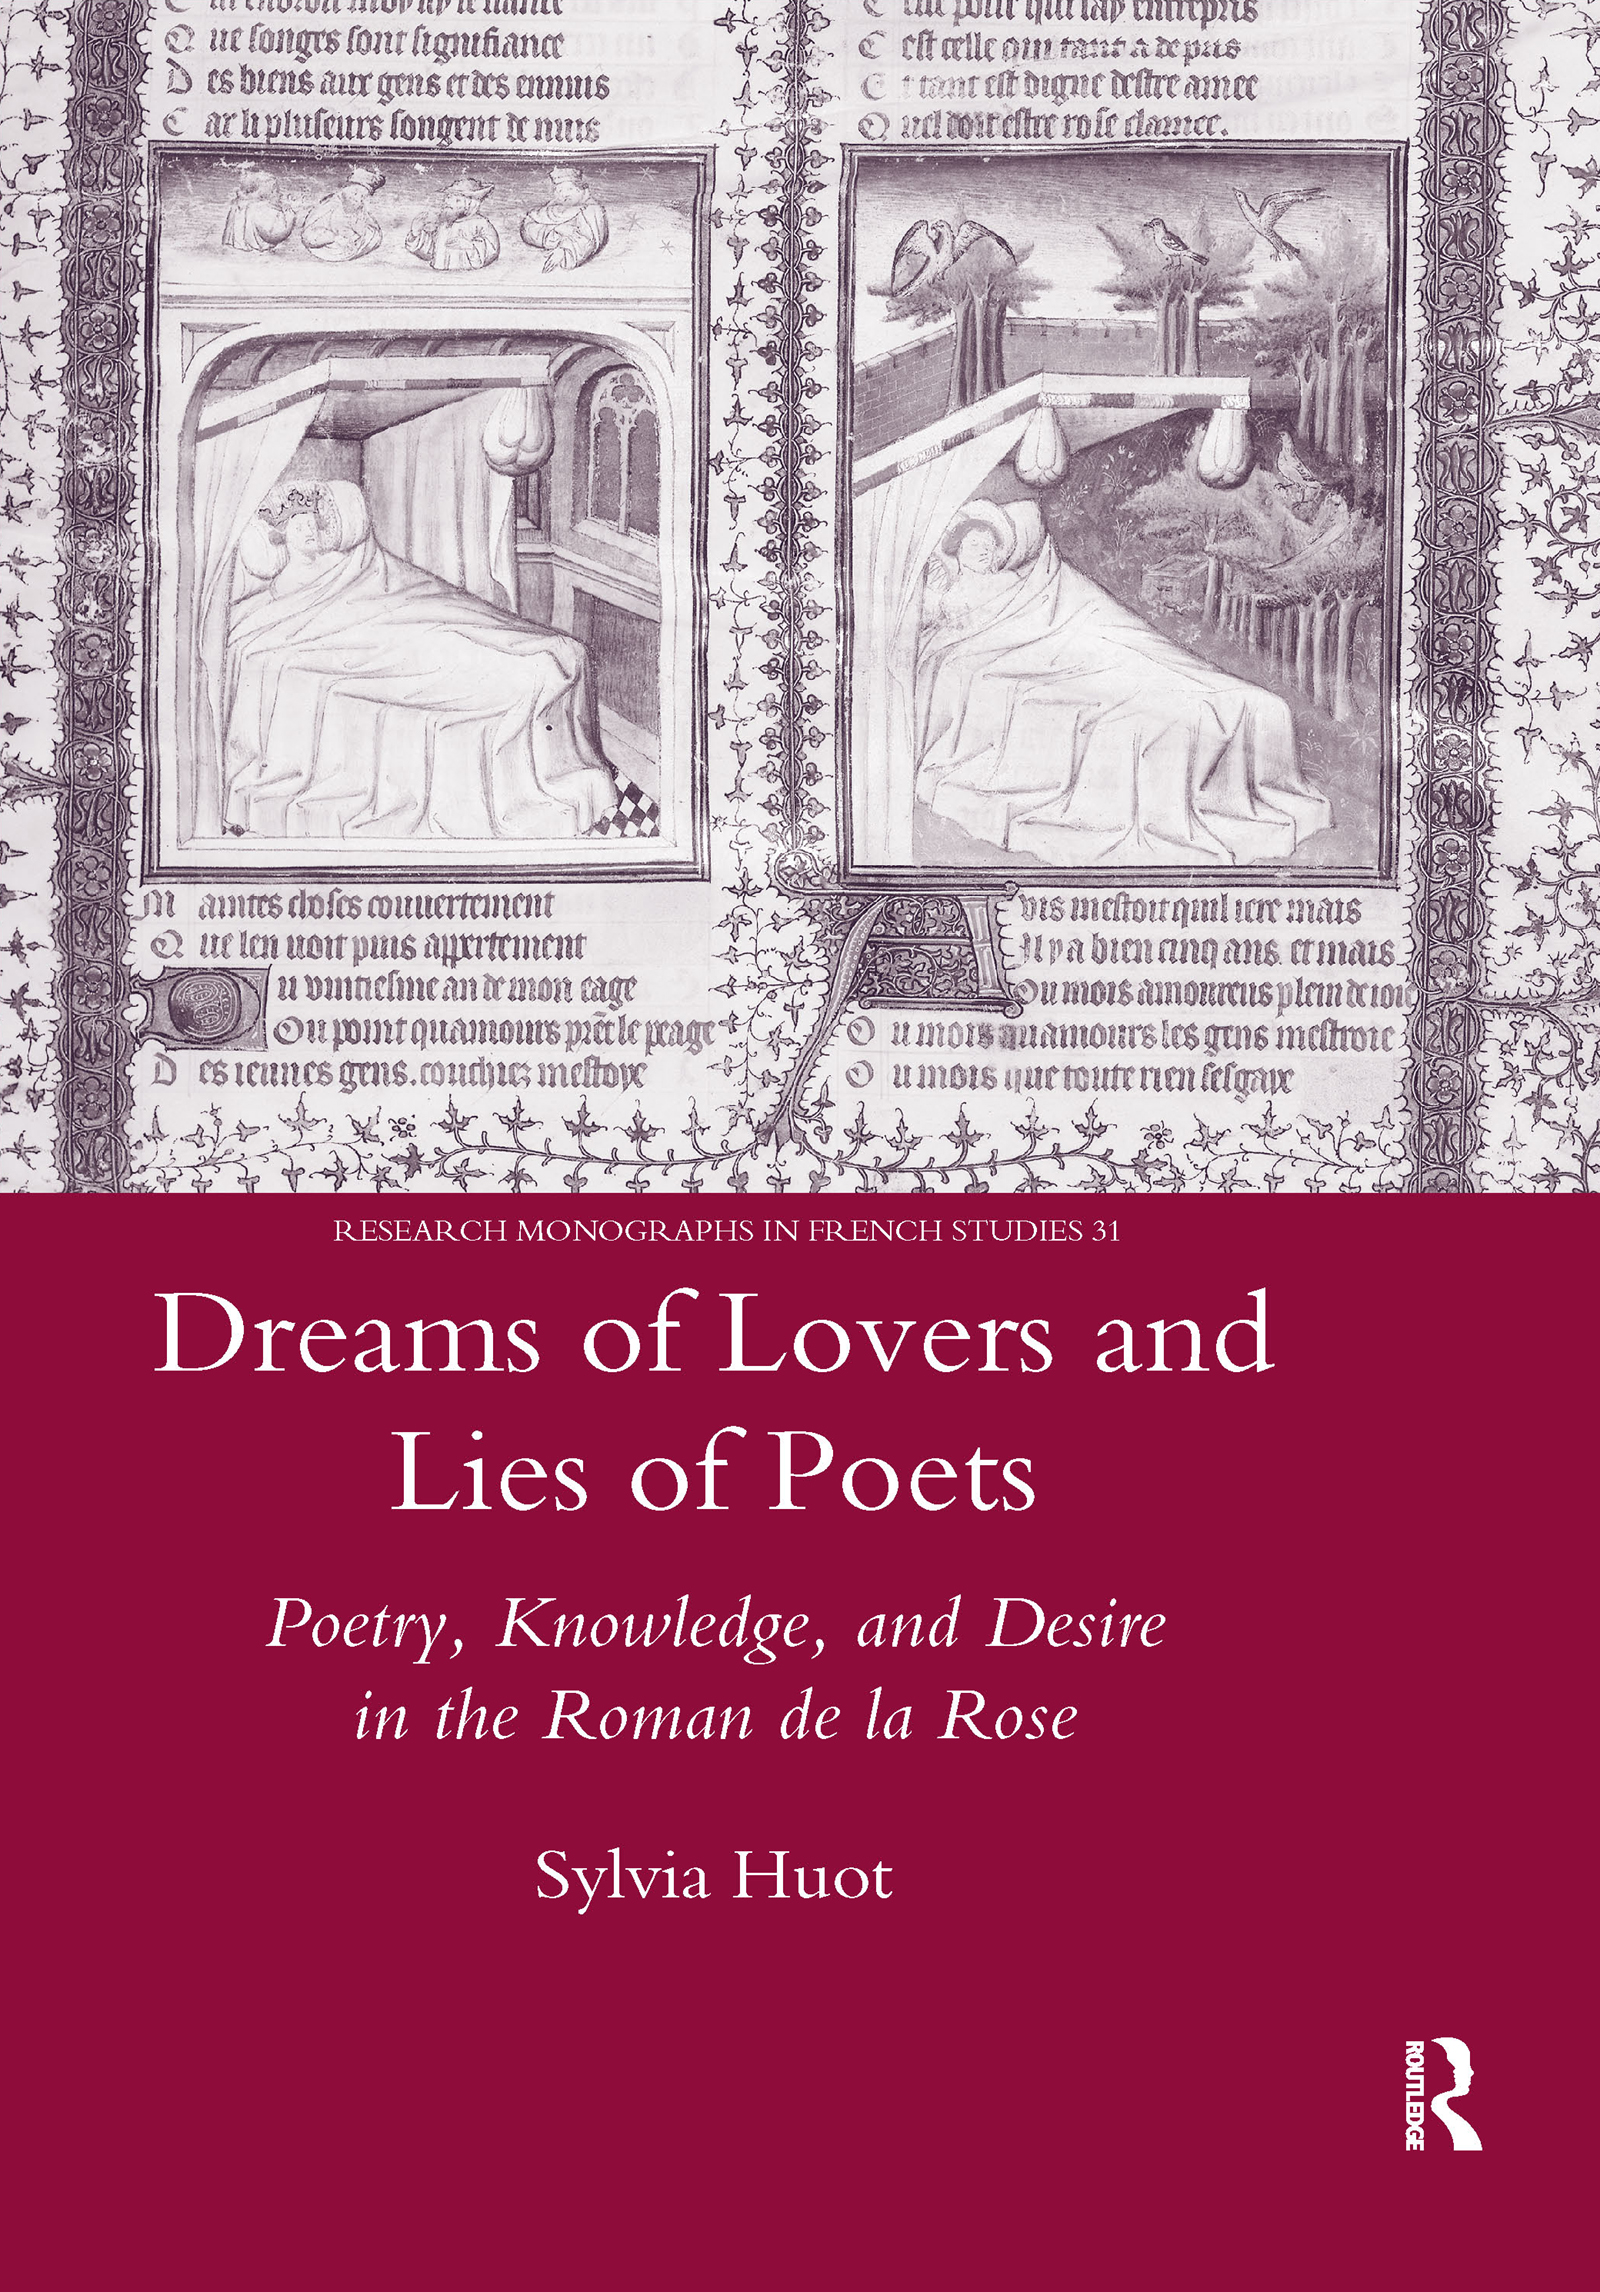 Dreams of Lovers and Lies of Poets: Poetry, Knowledge and Desire in the